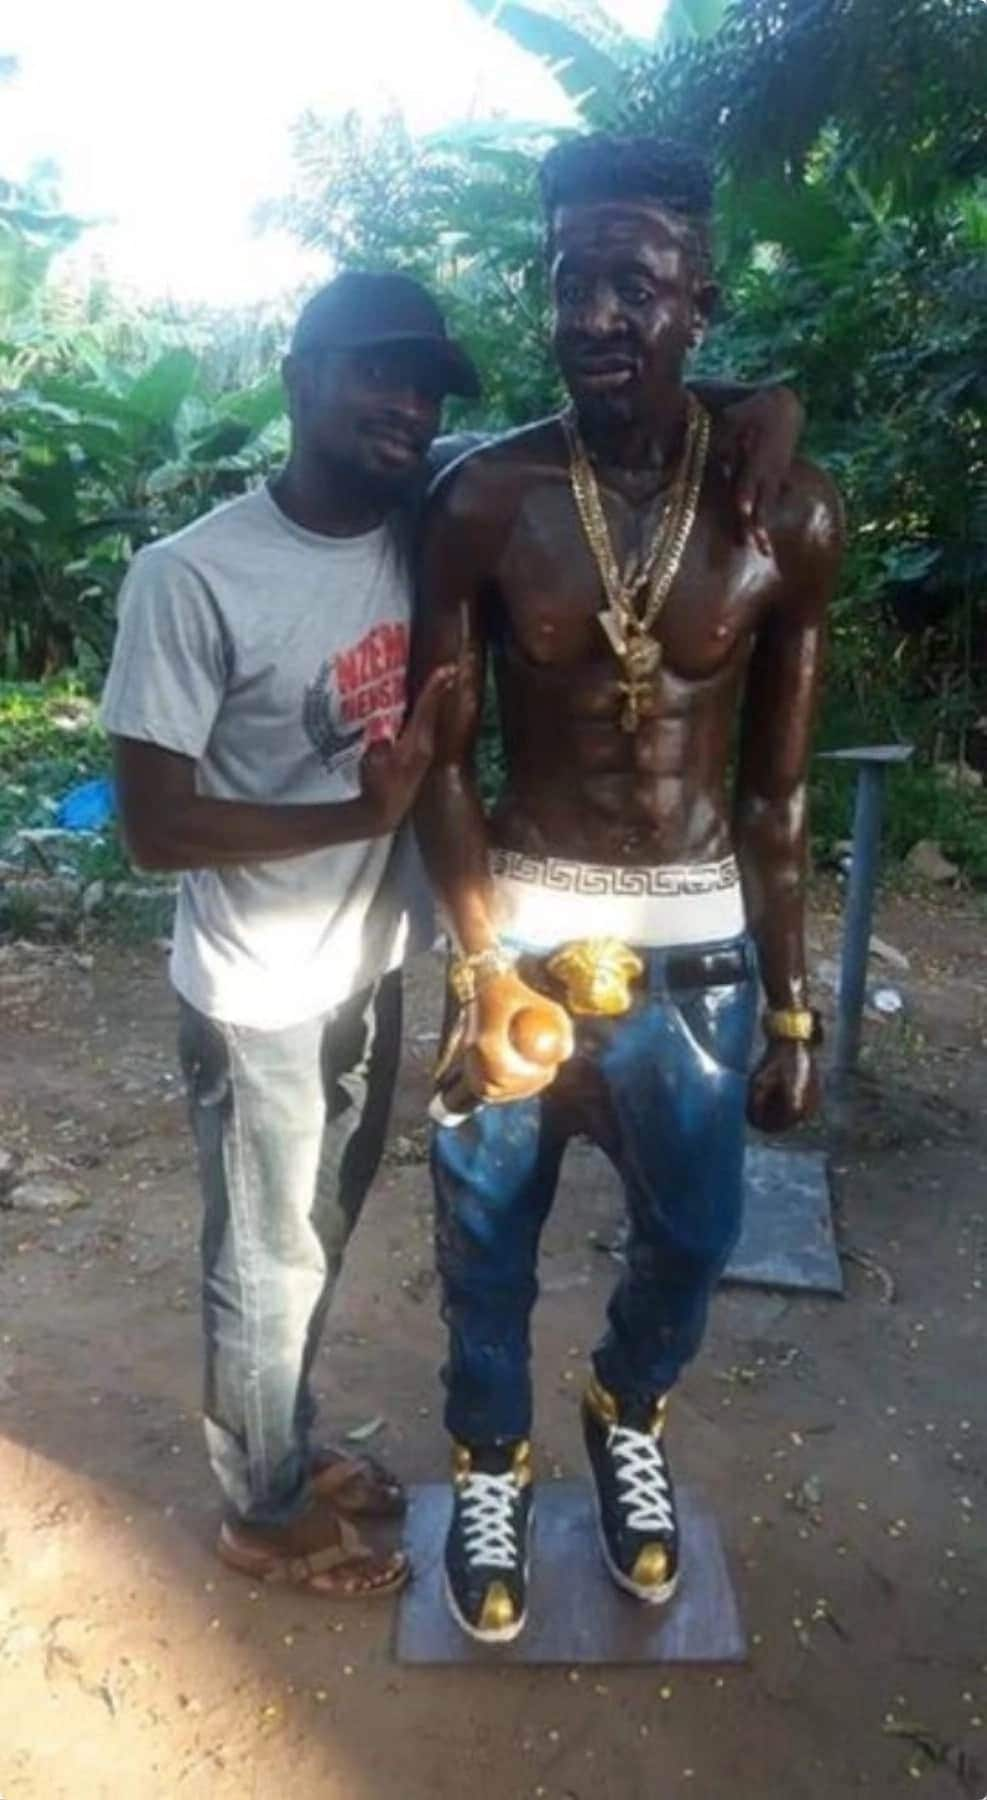 Sculptor designs 'unrecognizable' statue of Shatta Wale and fans cannot stop laughing